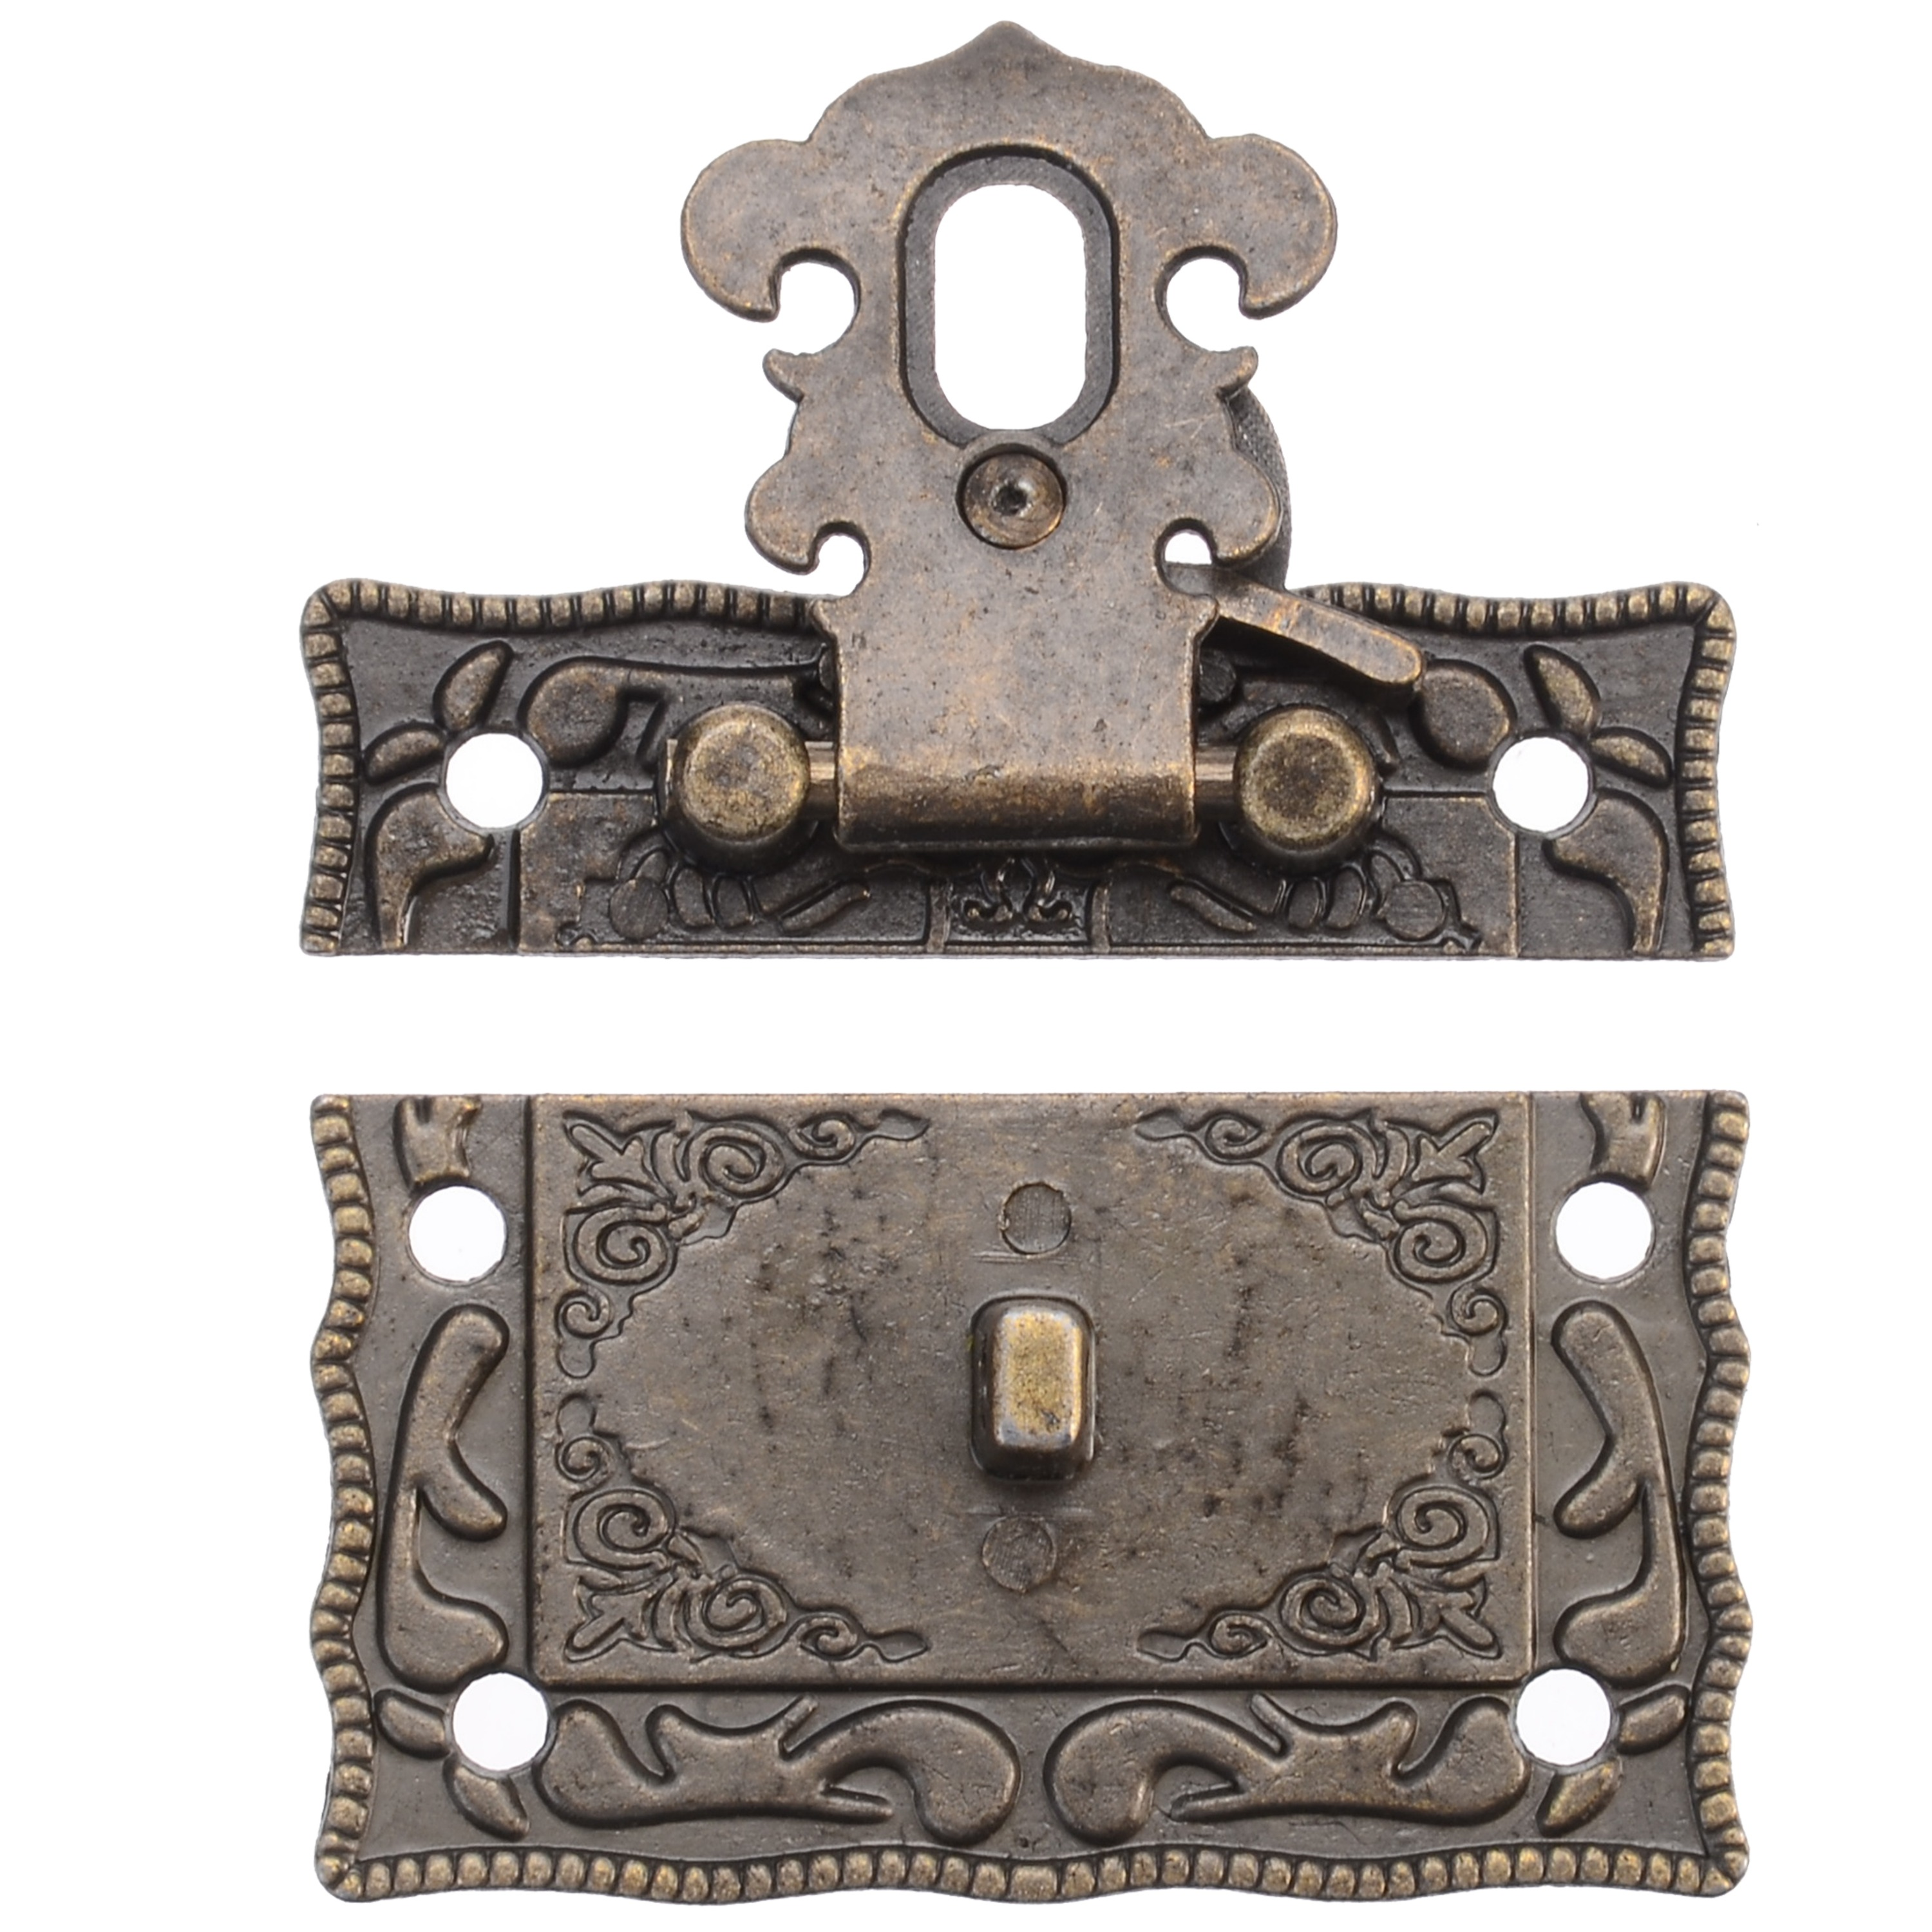 1Pc Iron Antique Jewelry Wooden Box Decorative Latch Hasp For Various Furniture Hardware Toggle Lock Security Safes Hasps